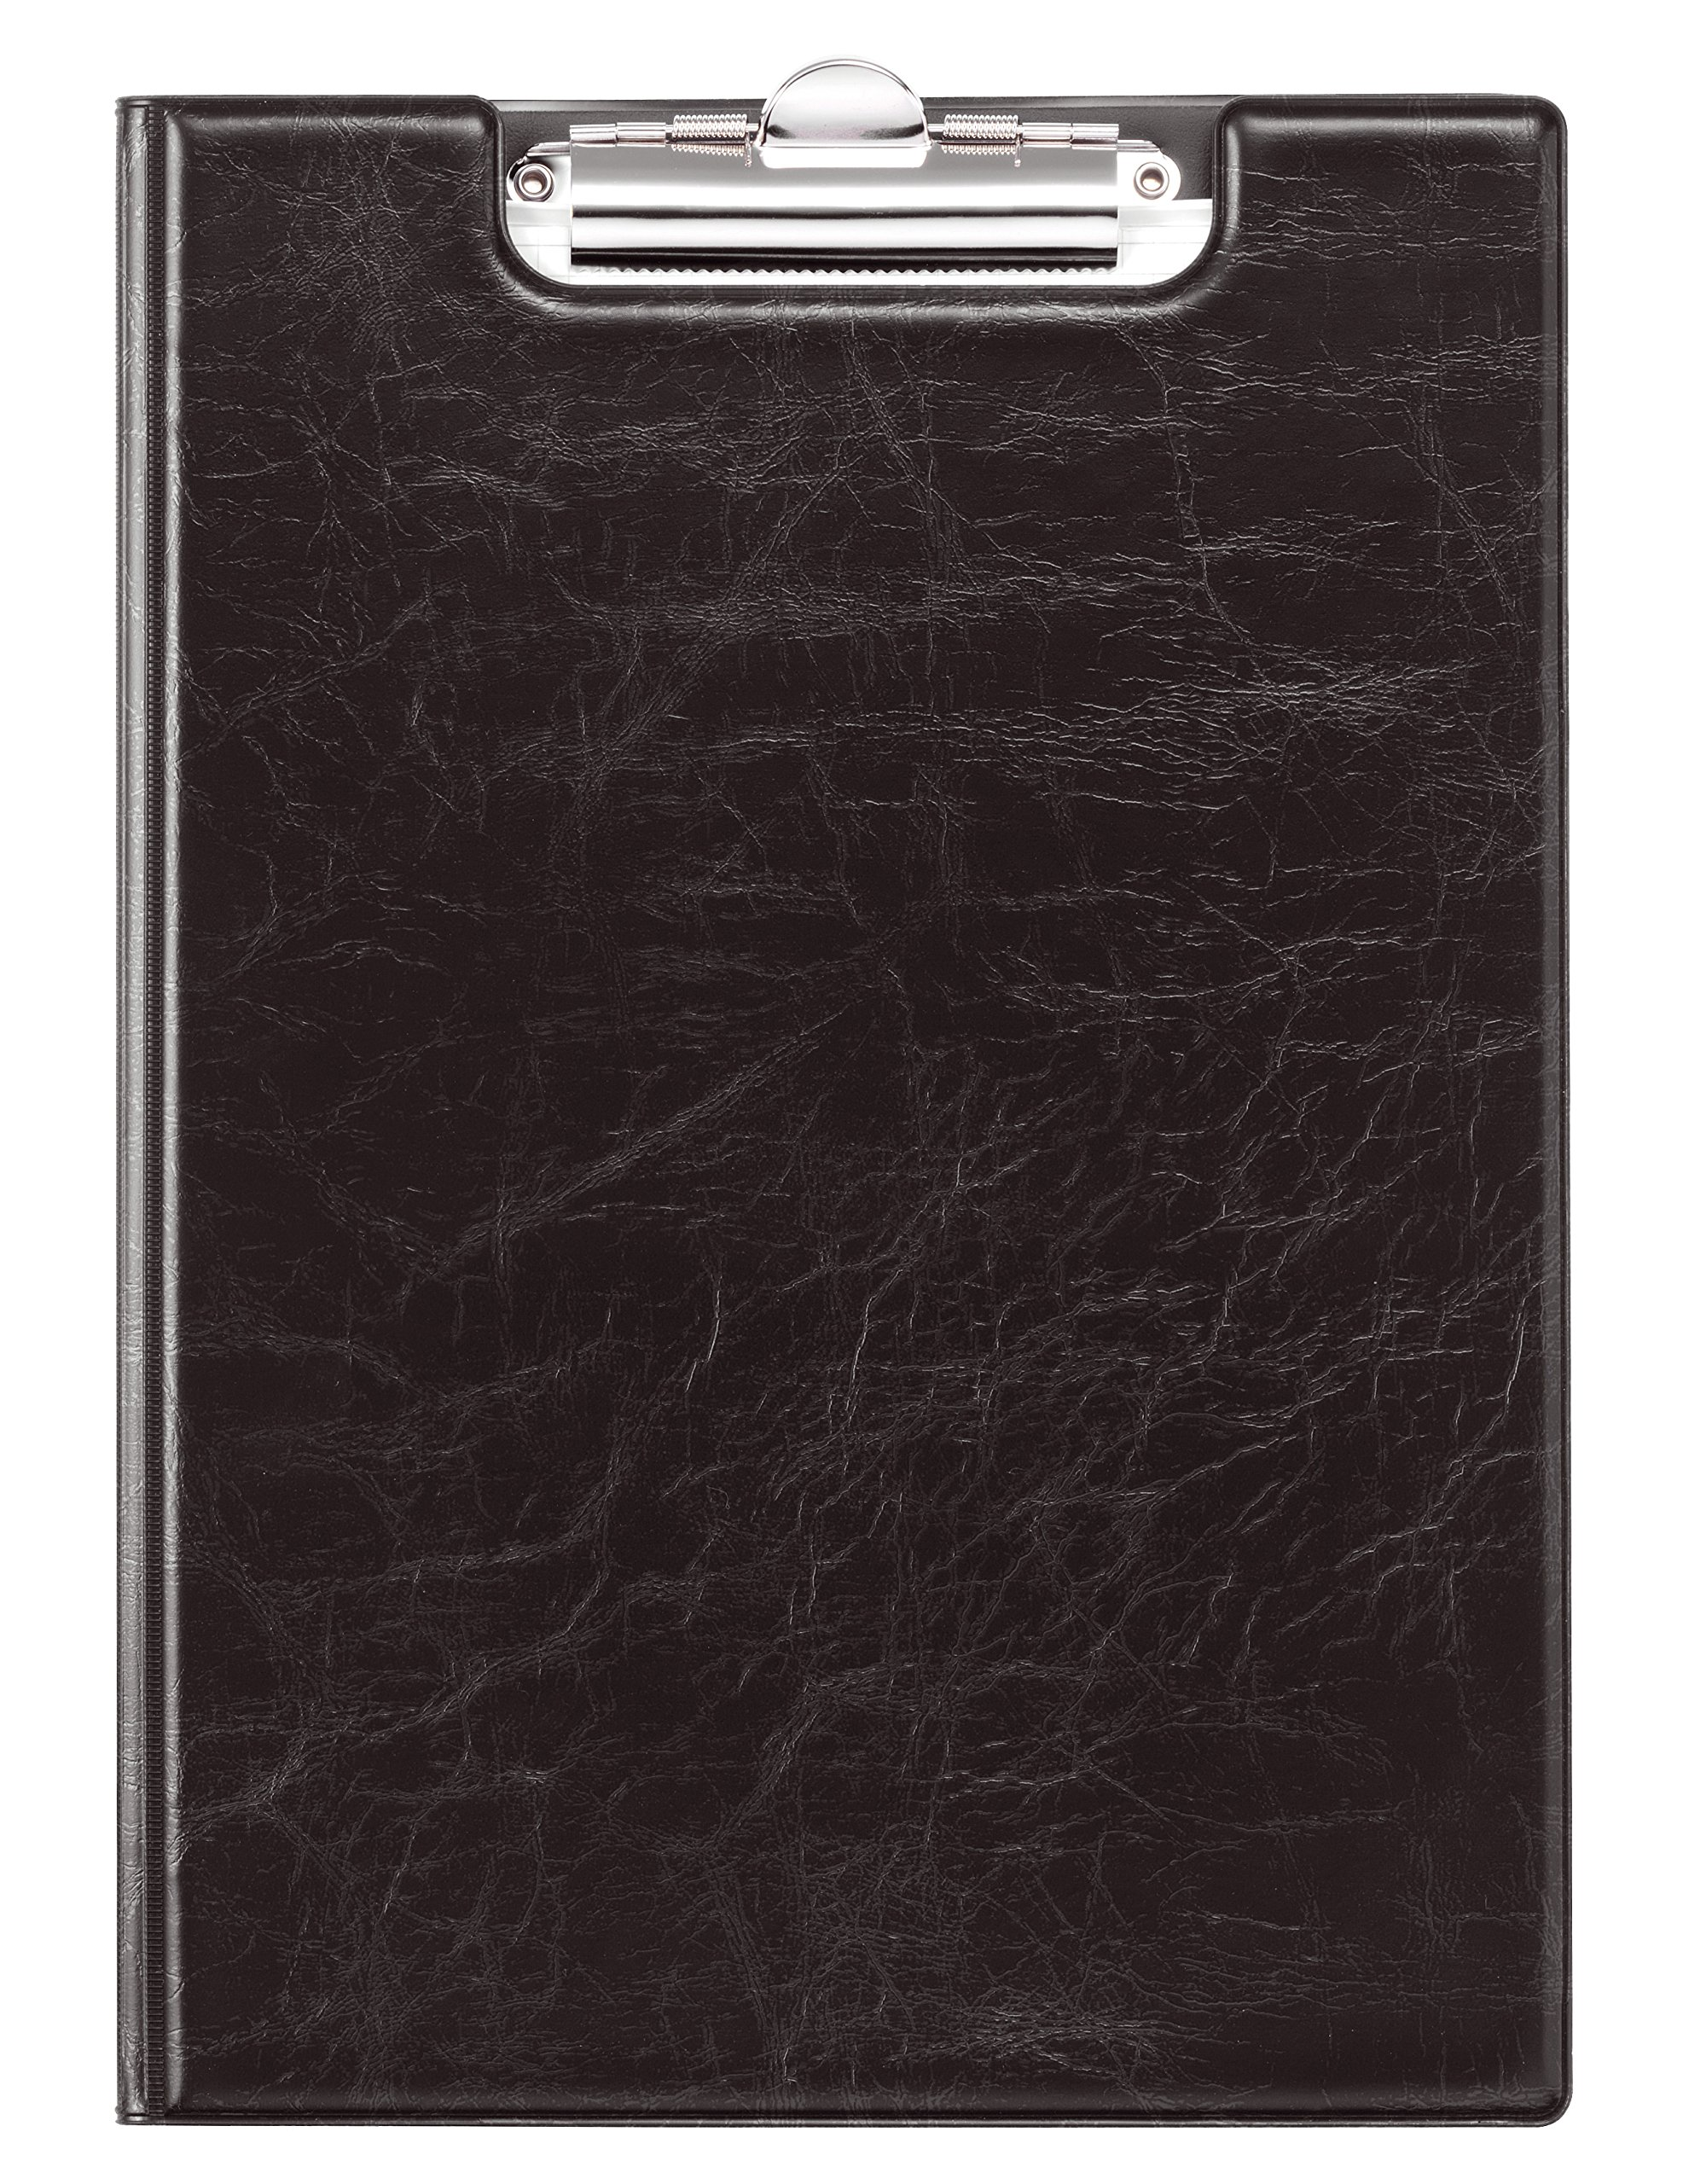 Durable 235501 A4 Block Wallet With Spring Terminal - Black